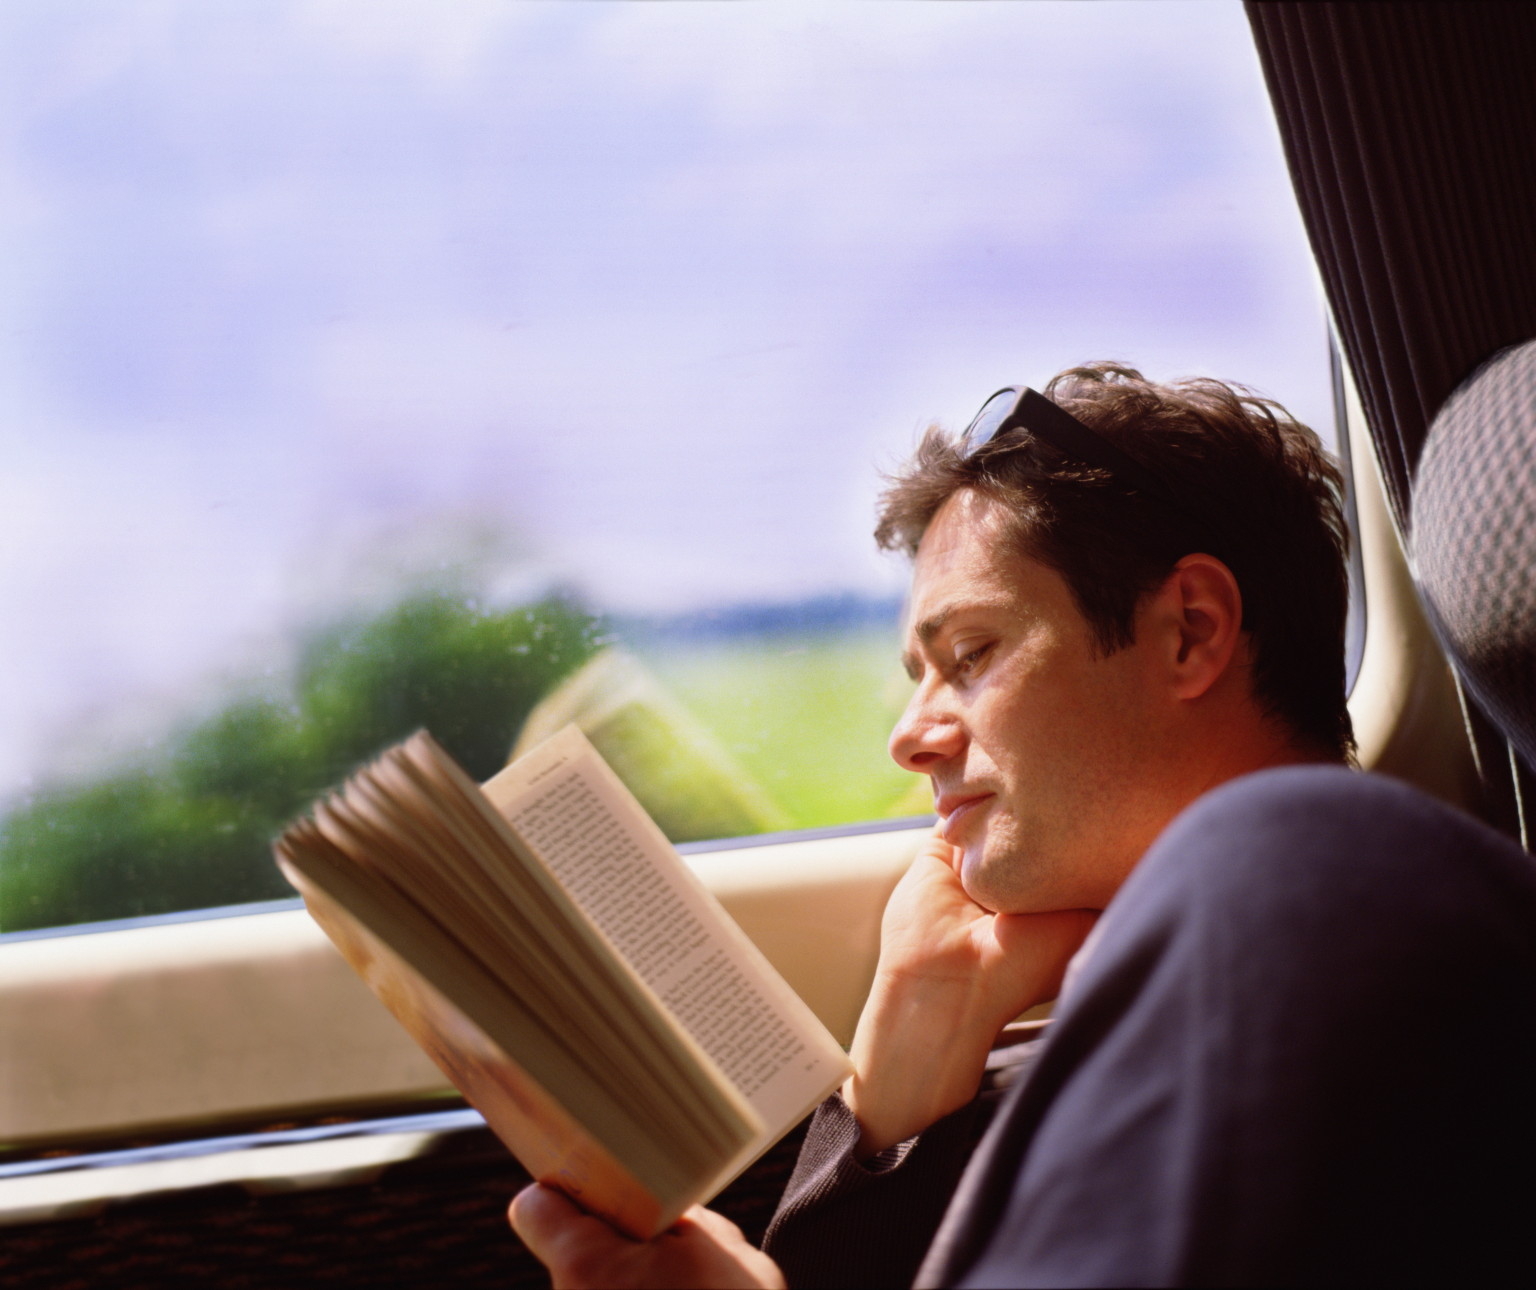 Photo of a man on a train, reading a book.